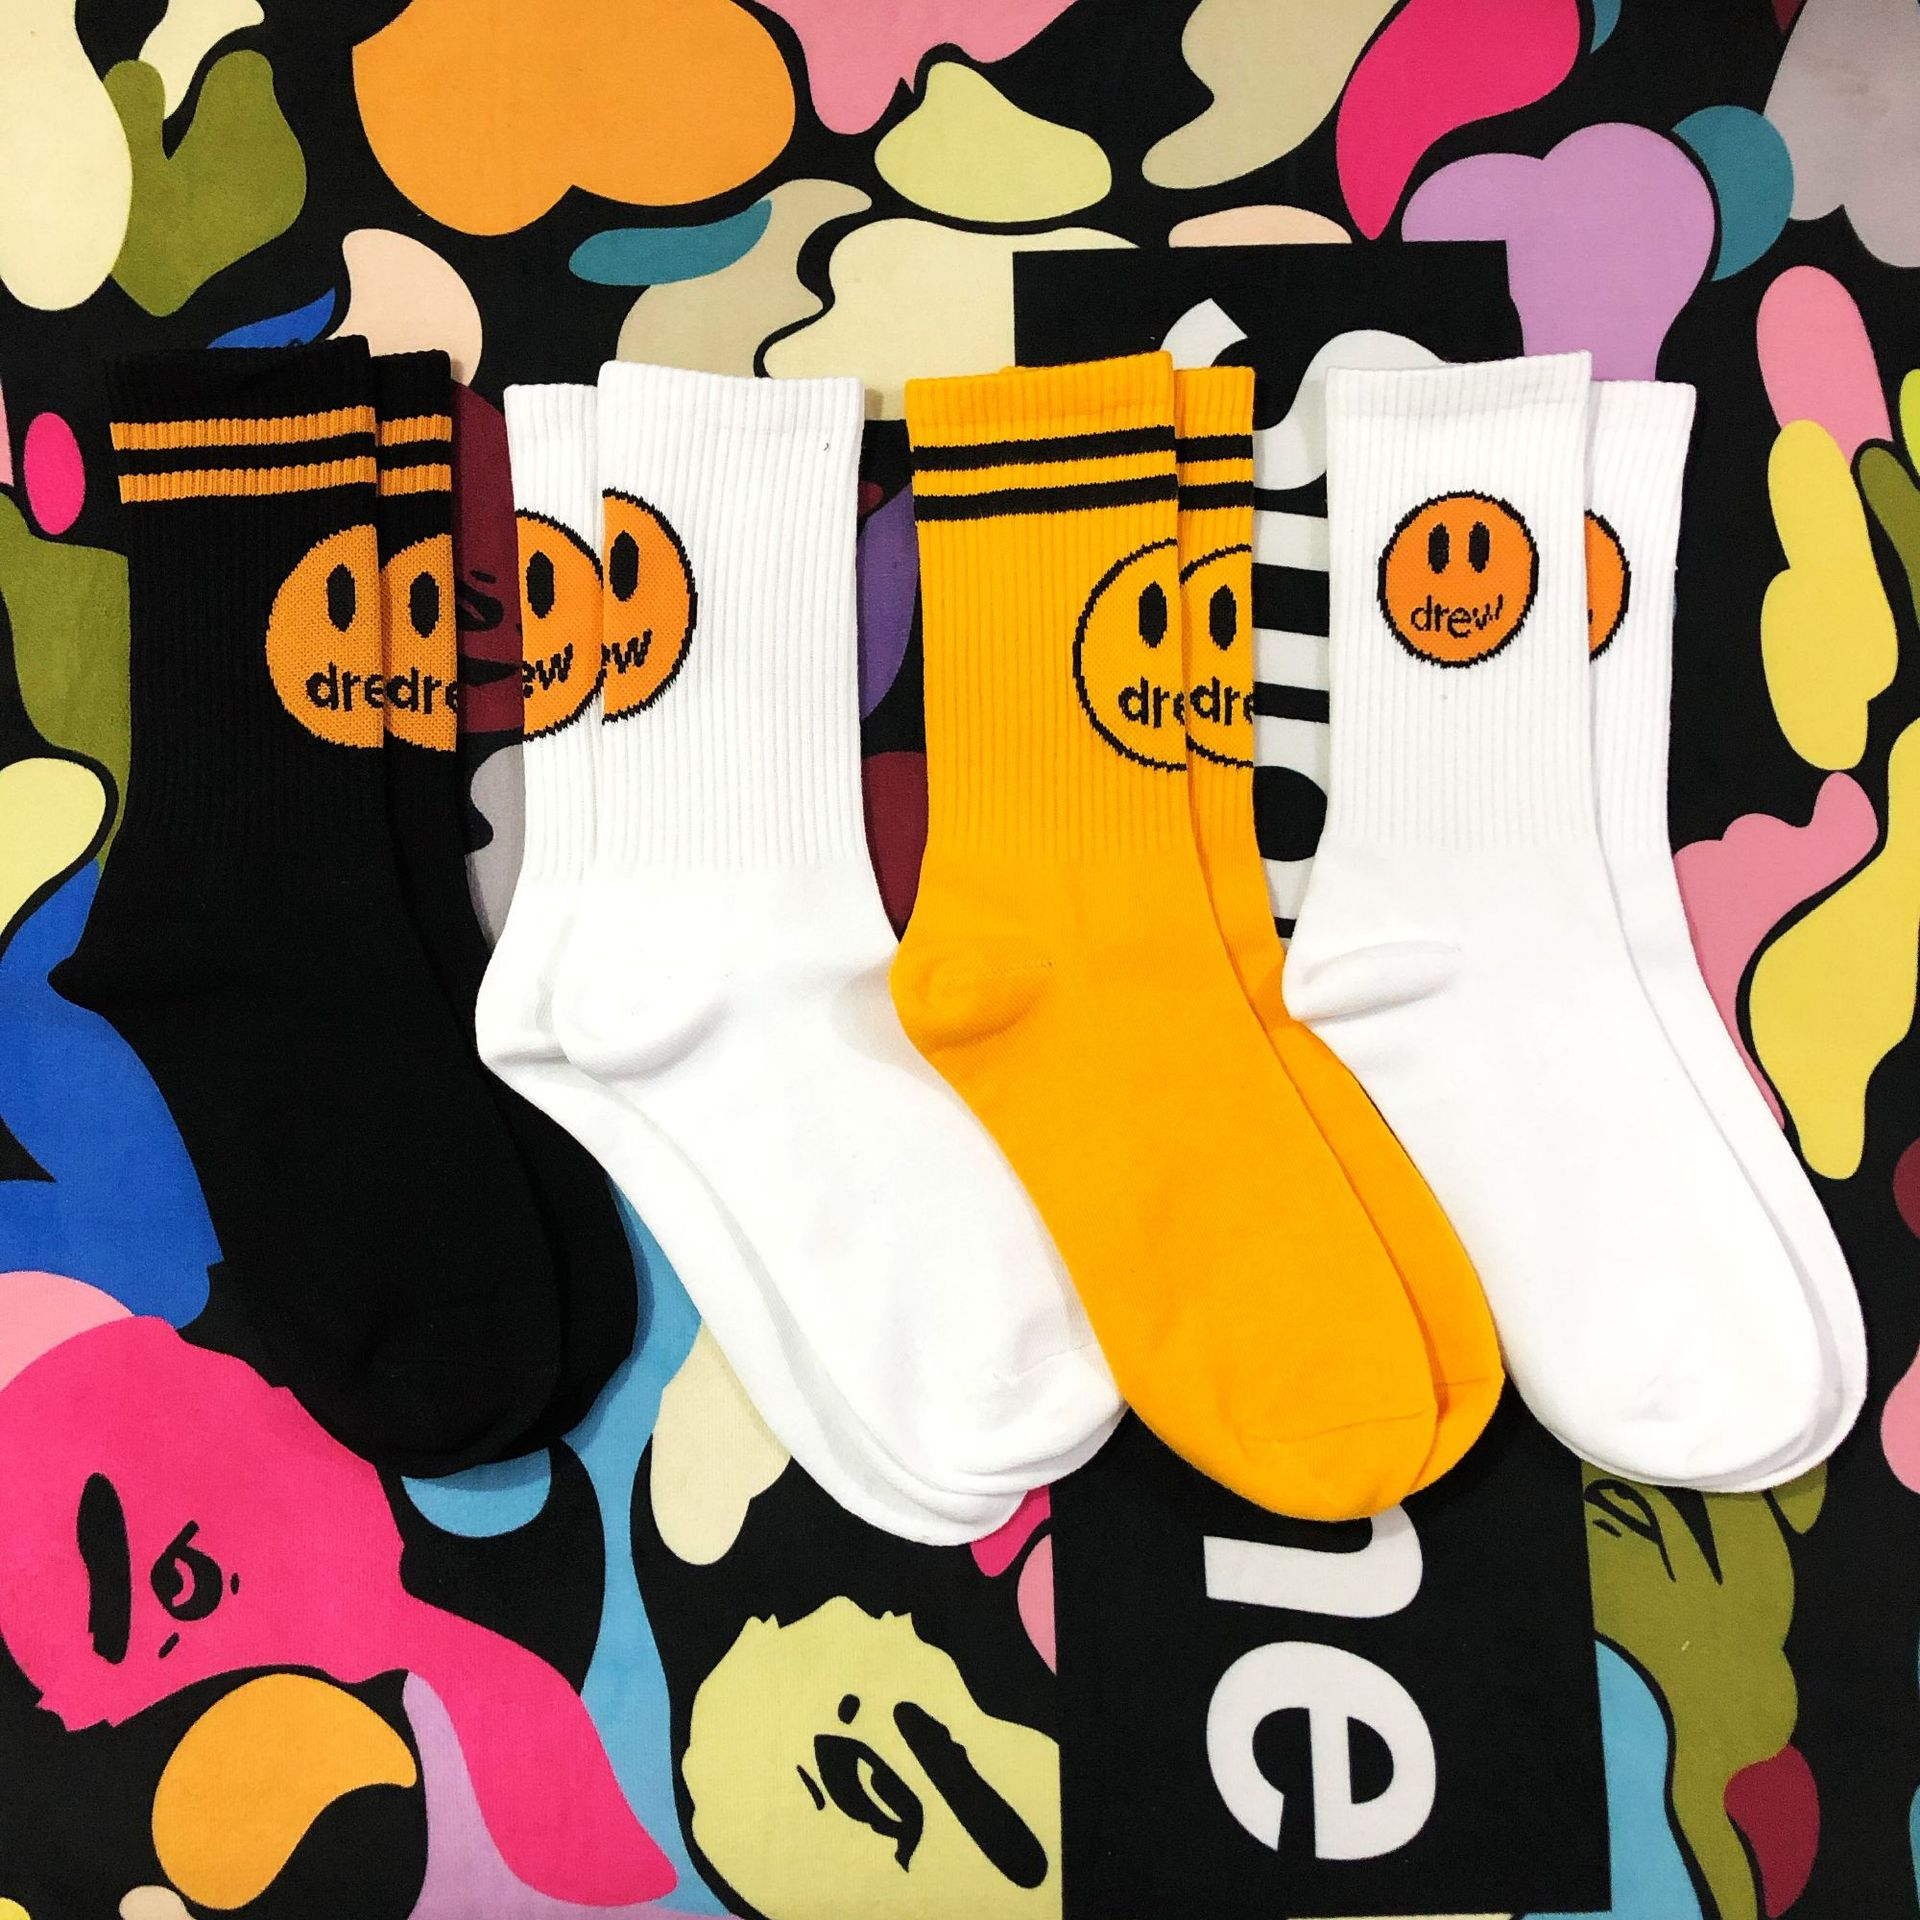 Dropshipping 2020 Adult Crew Drew House Justin Bieber Socks INS Street Fashion Hip Hop Mens Socks Funny Smile Soks Gifts For Men